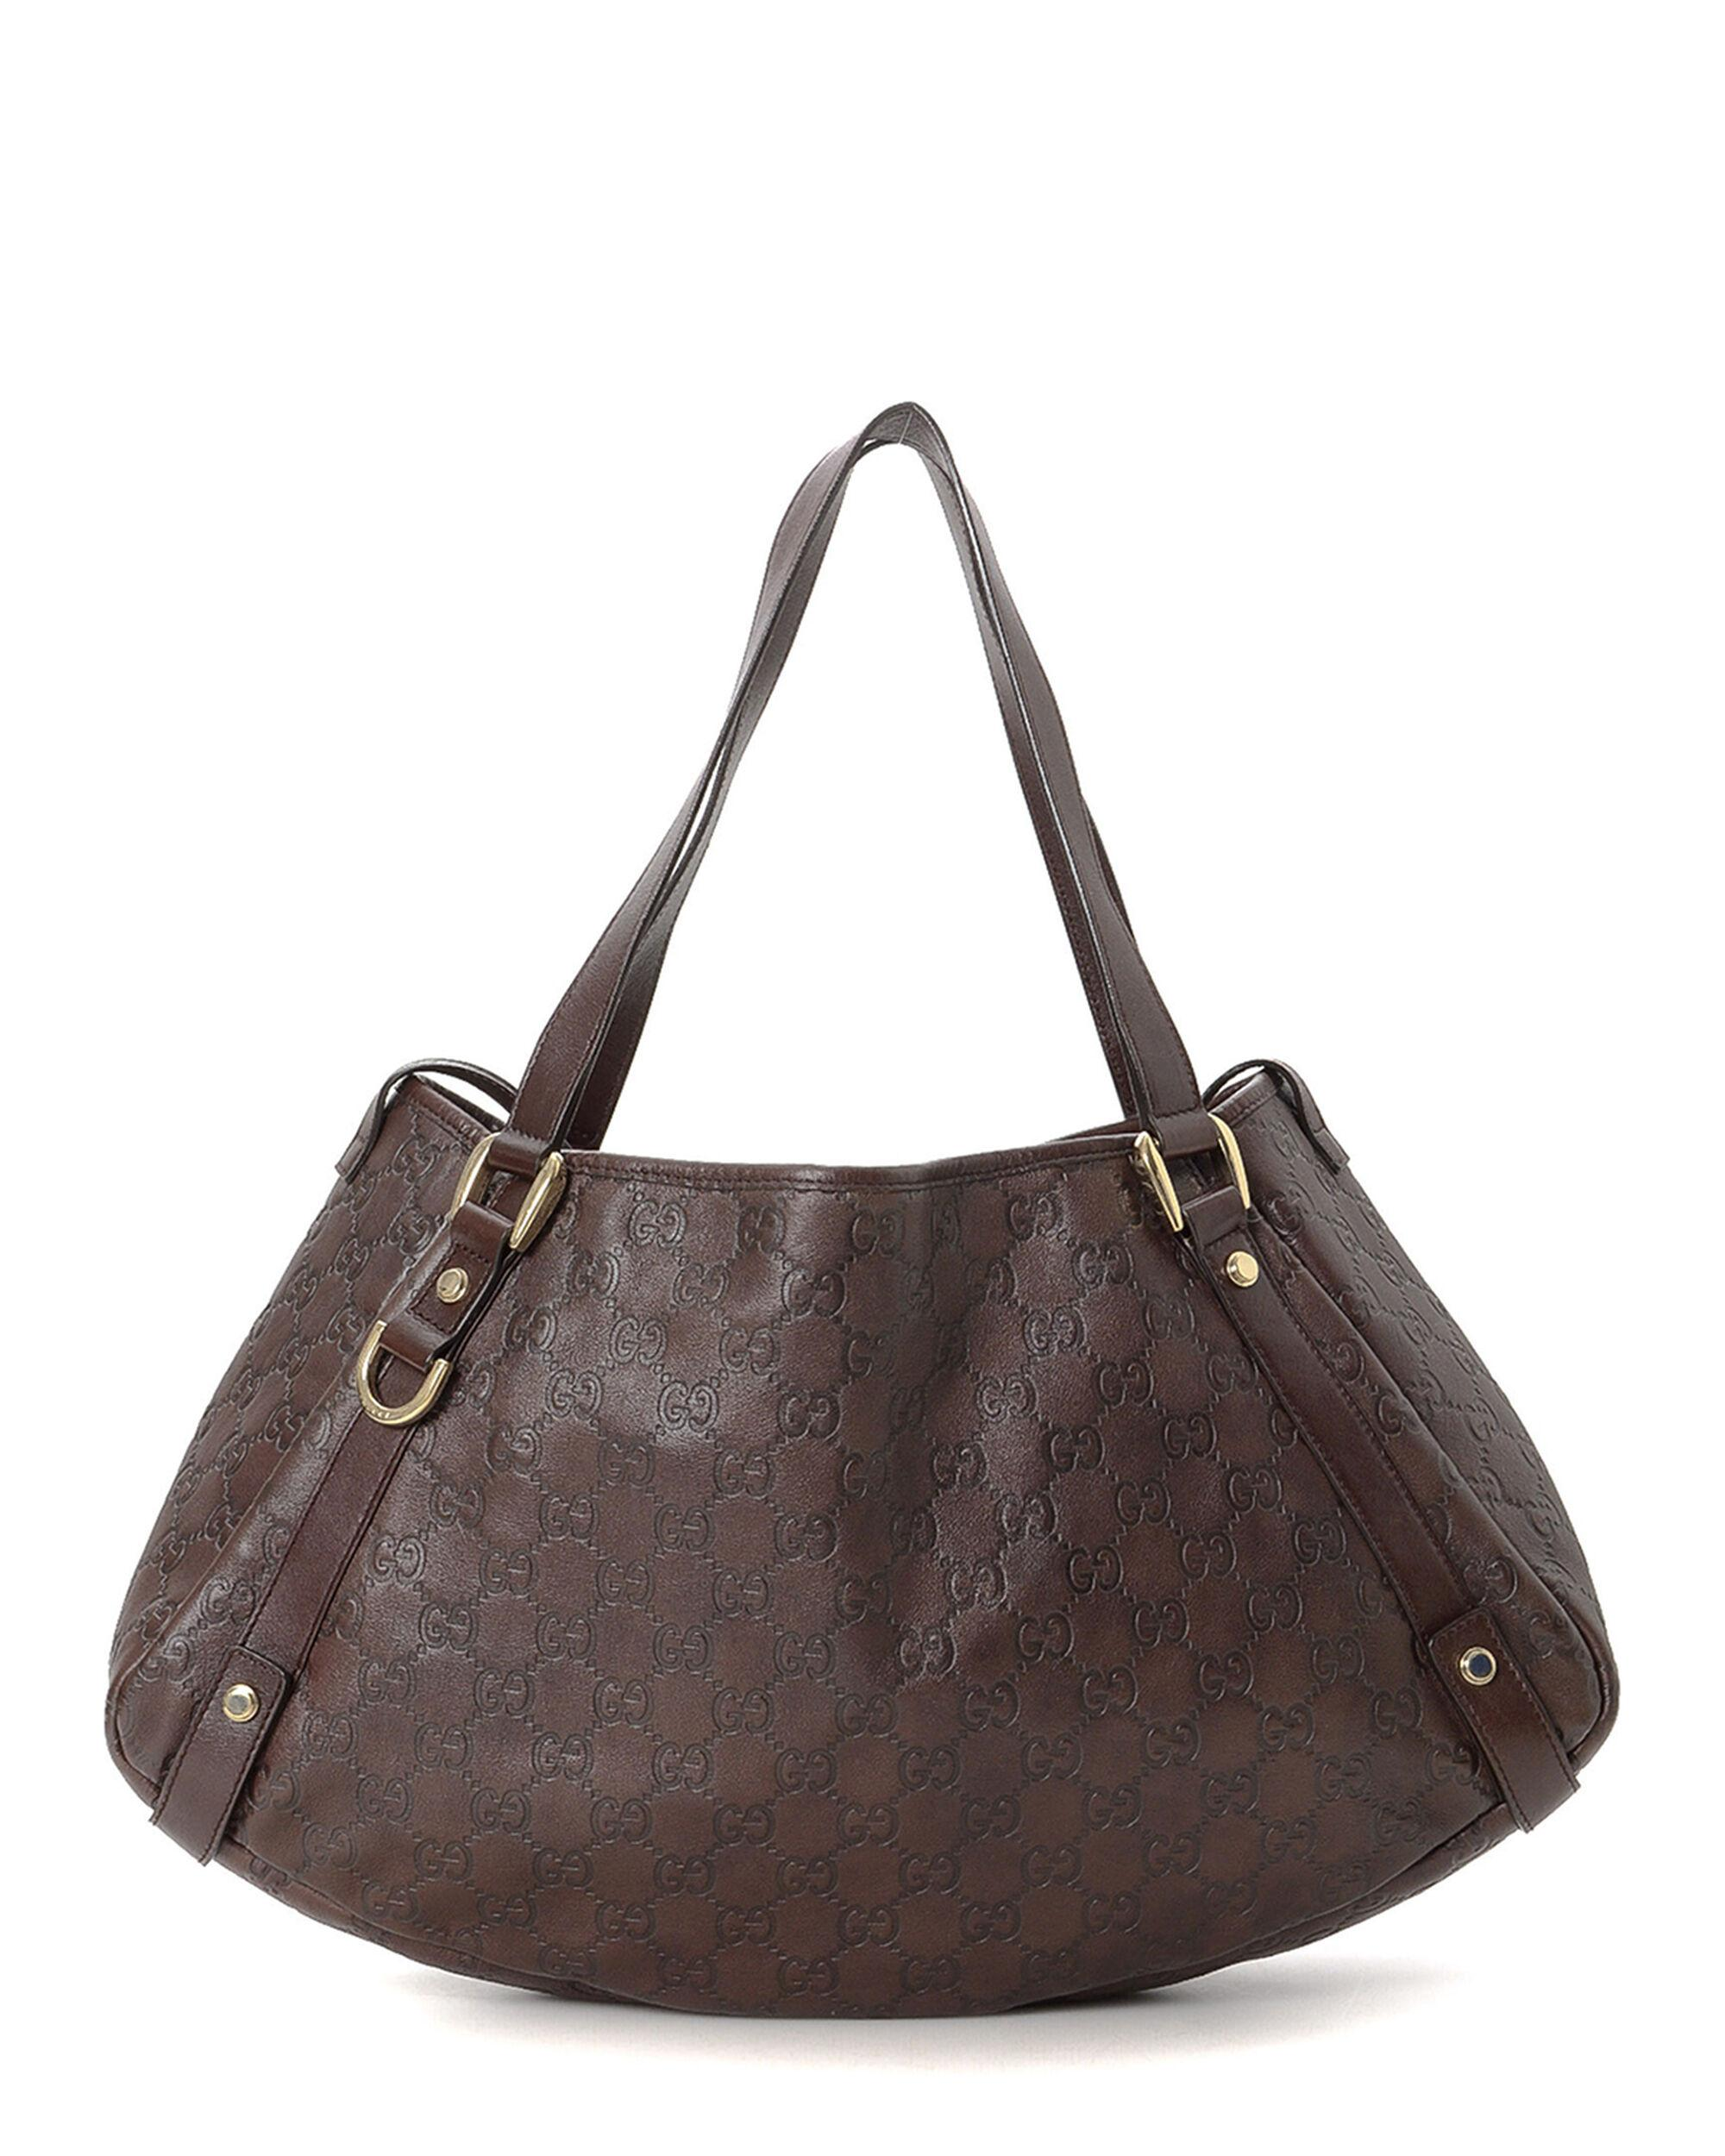 d43d4289d Gucci Leather Tote - Vintage in Brown - Lyst